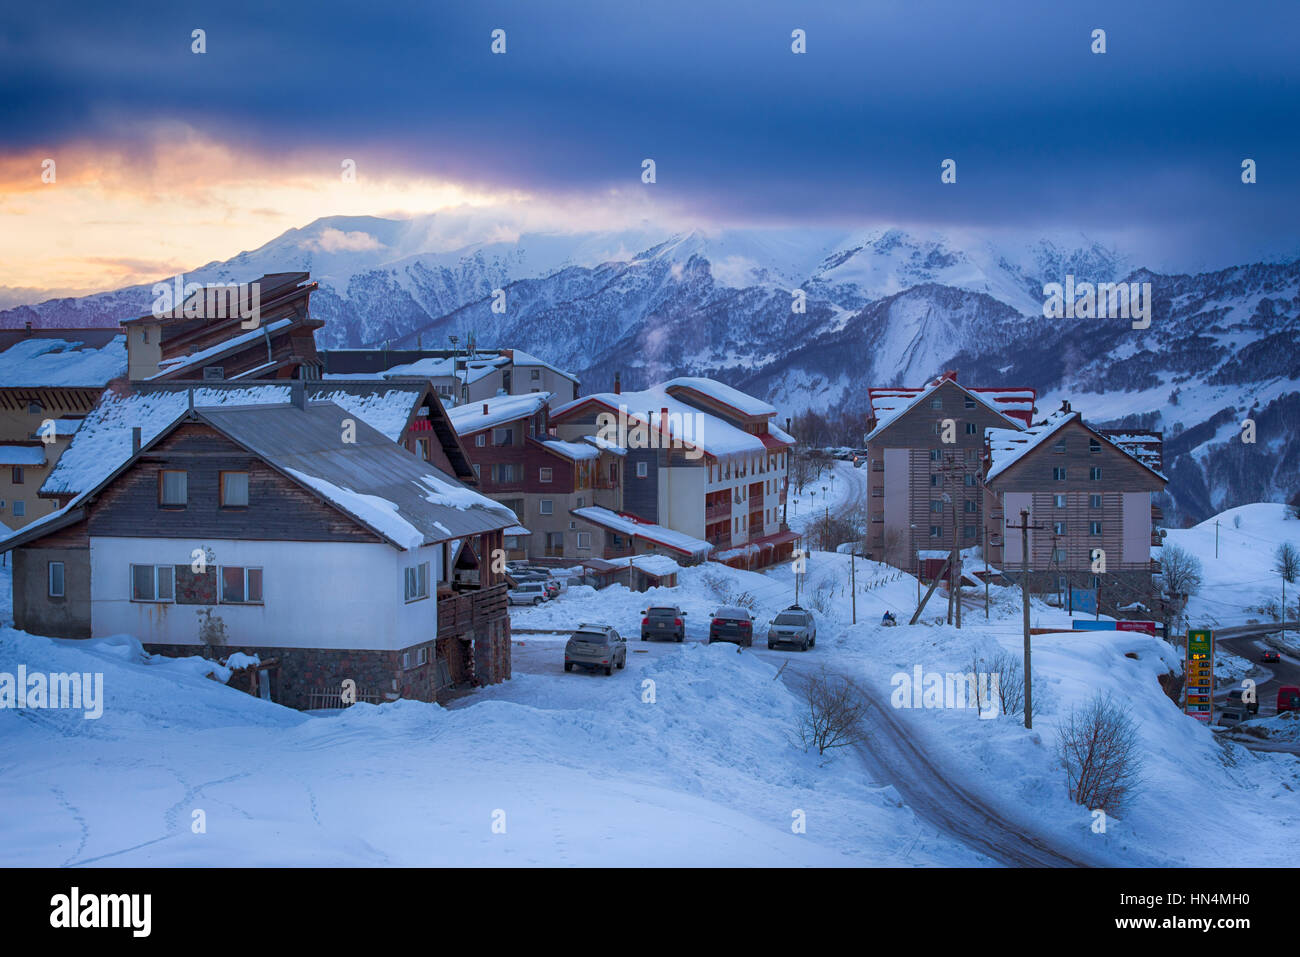 Gudauri Ski Resort and Village - Stock Image